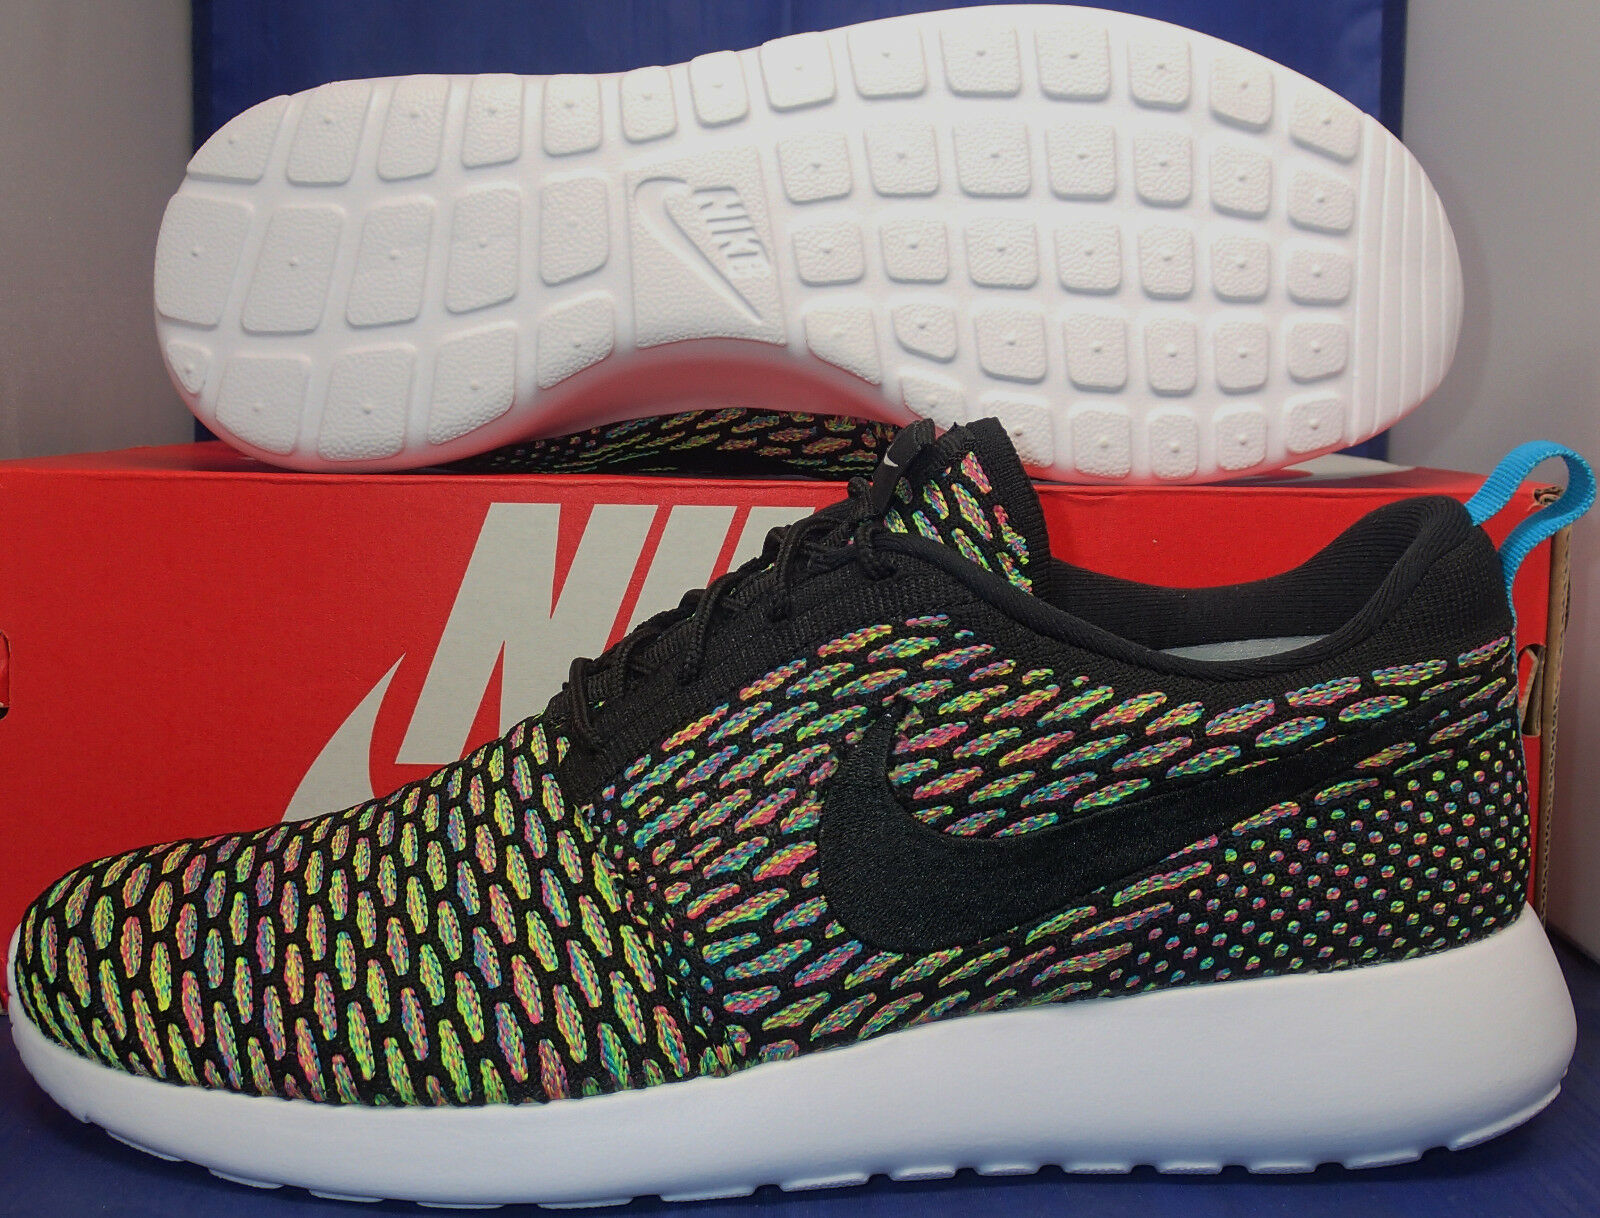 Nike Flyknit Roshe Run iD Multi-Color Price reduction